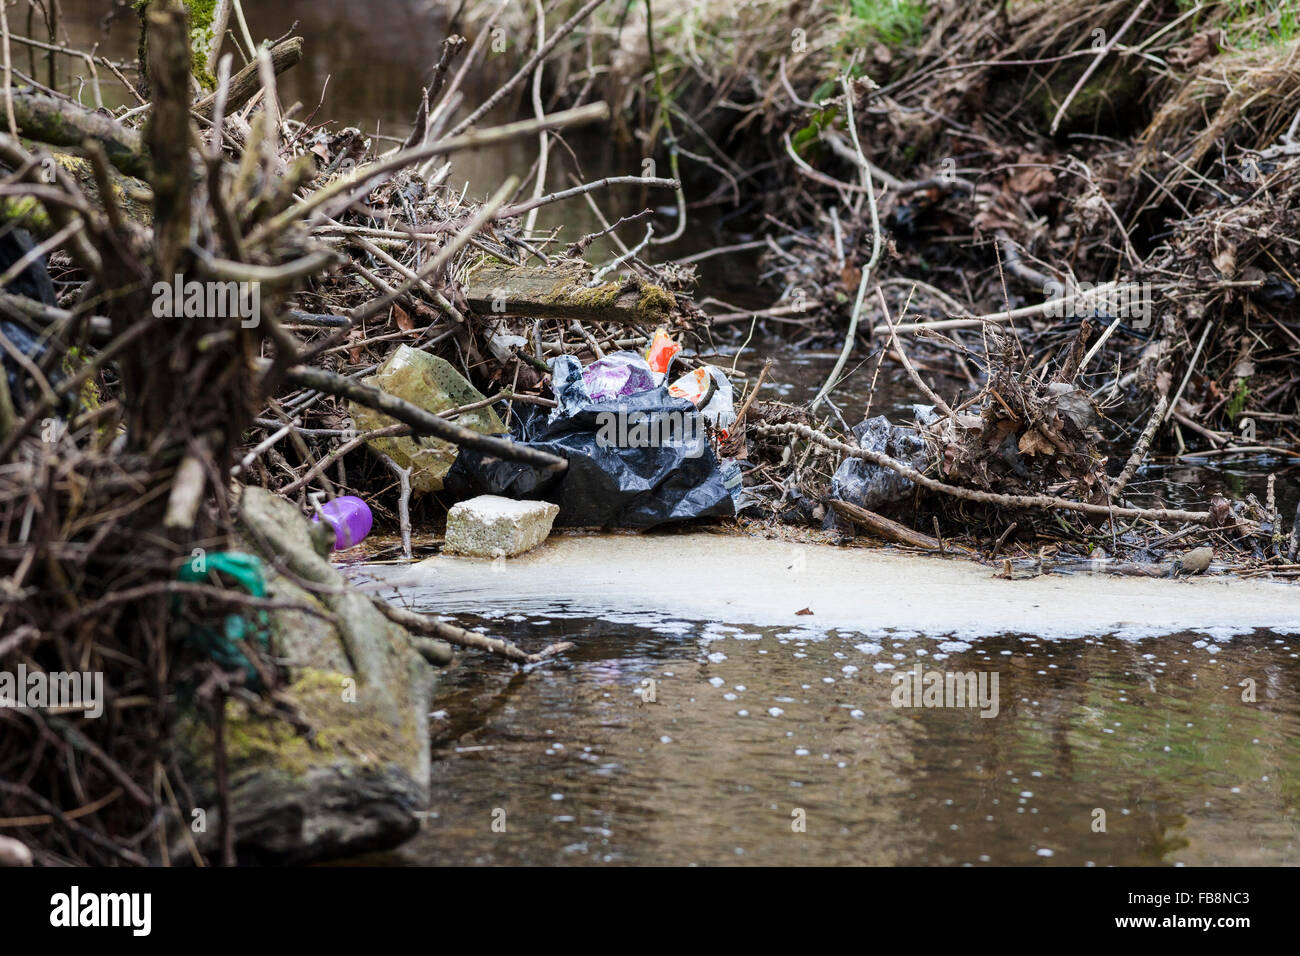 Plastic and Other Rubbish Polluting and Impeding the Flow of a Stream England UK - Stock Image